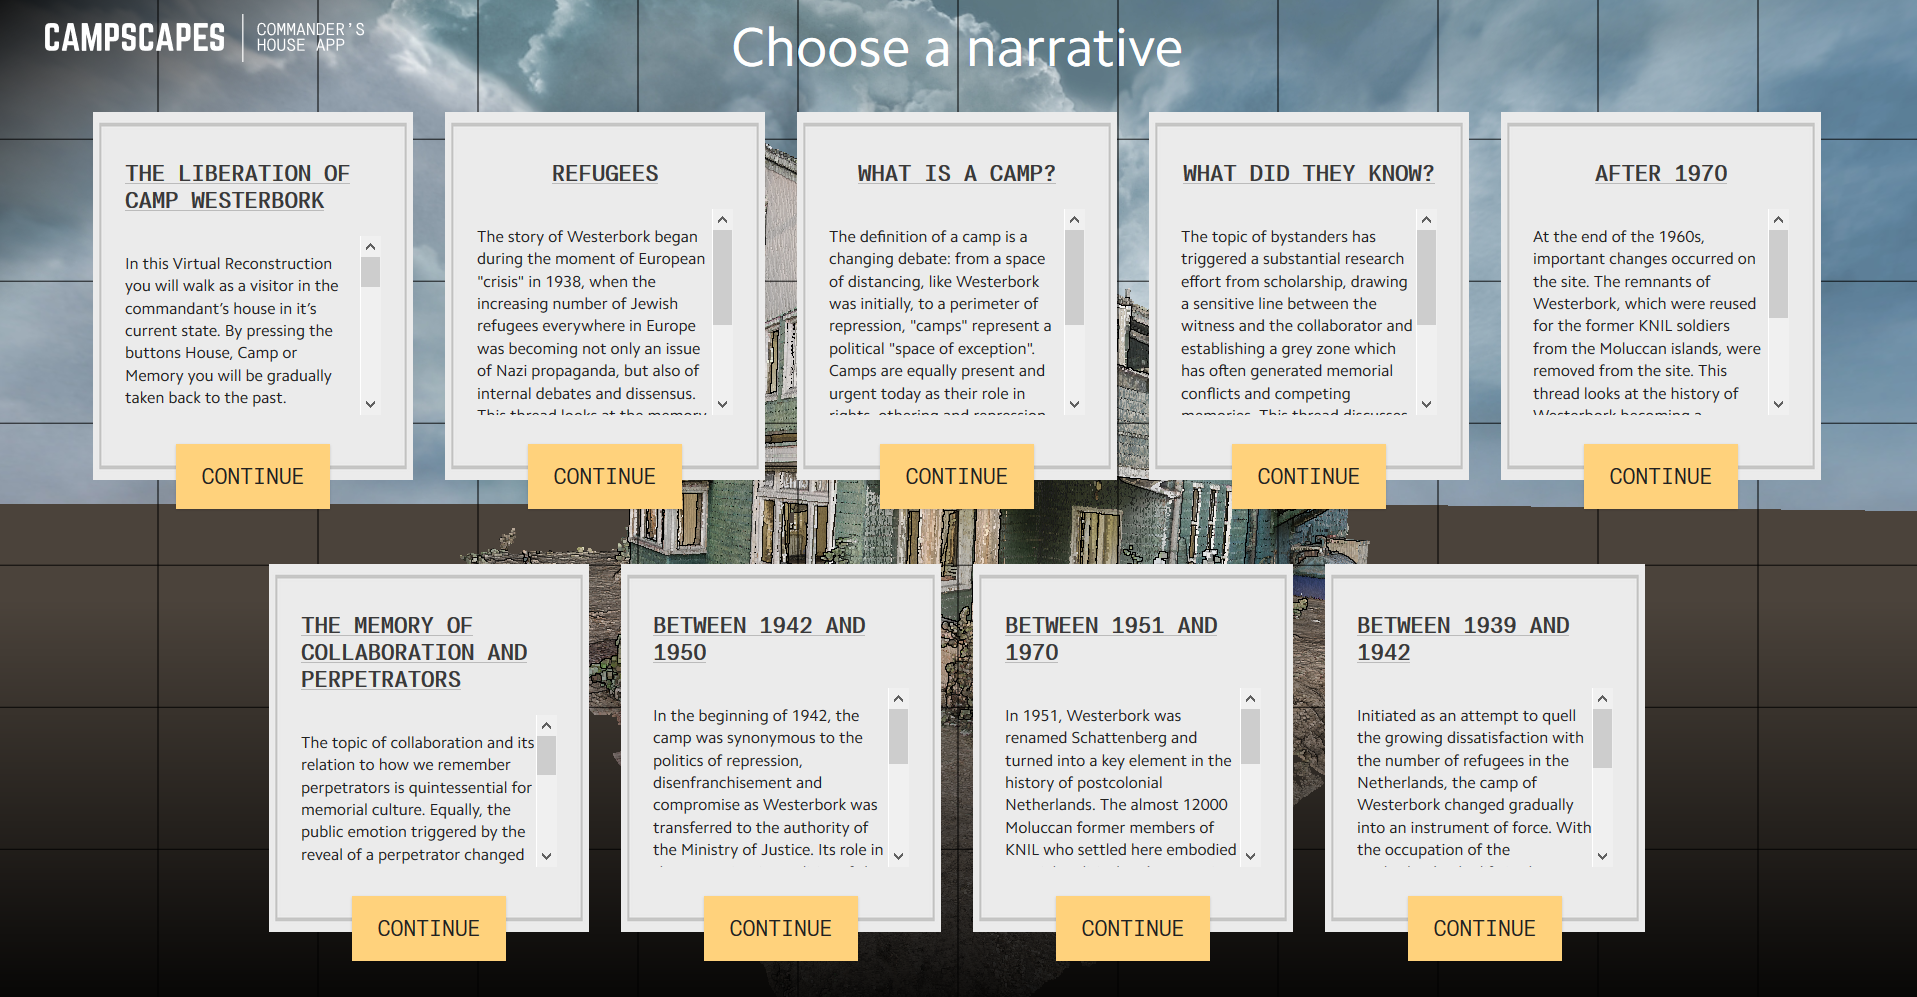 Selection screen for narratives, covering different perspectives on the Commander's house.